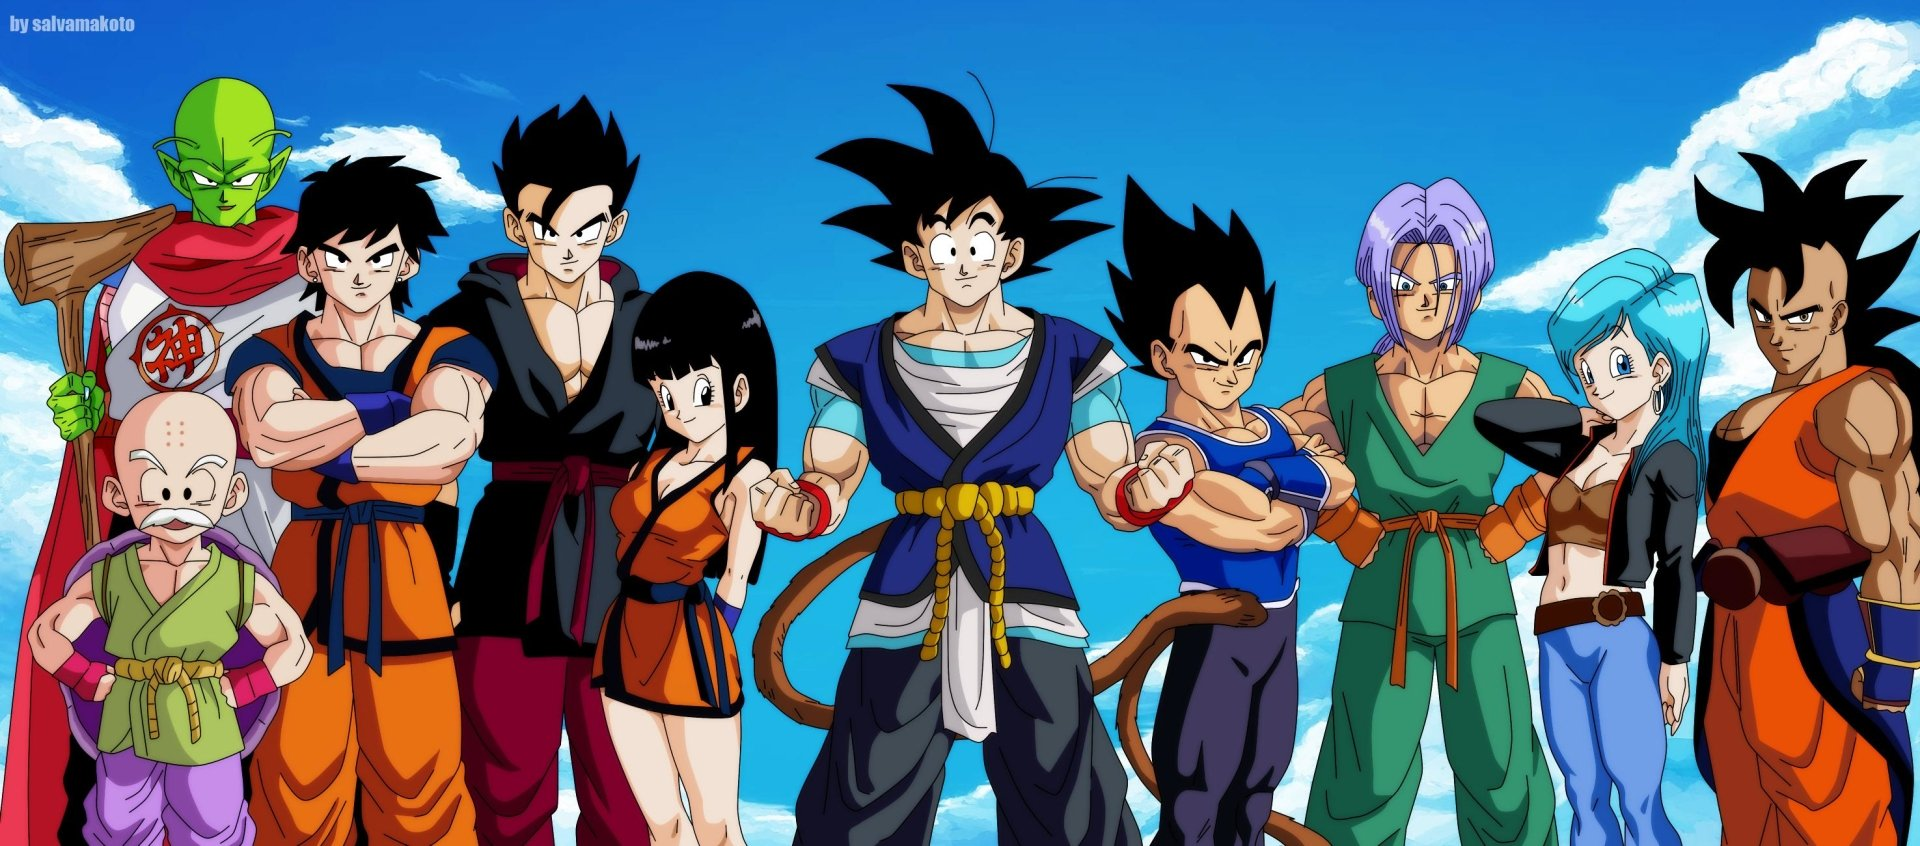 动漫 - 龙珠超  Trunks (Dragon Ball) Vegeta (Dragon Ball) Krillin (Dragon Ball) Gohan (Dragon Ball) Goku Dende (Dragon Ball) Pan (Dragon Ball) Bulla (Dragon Ball) 壁纸